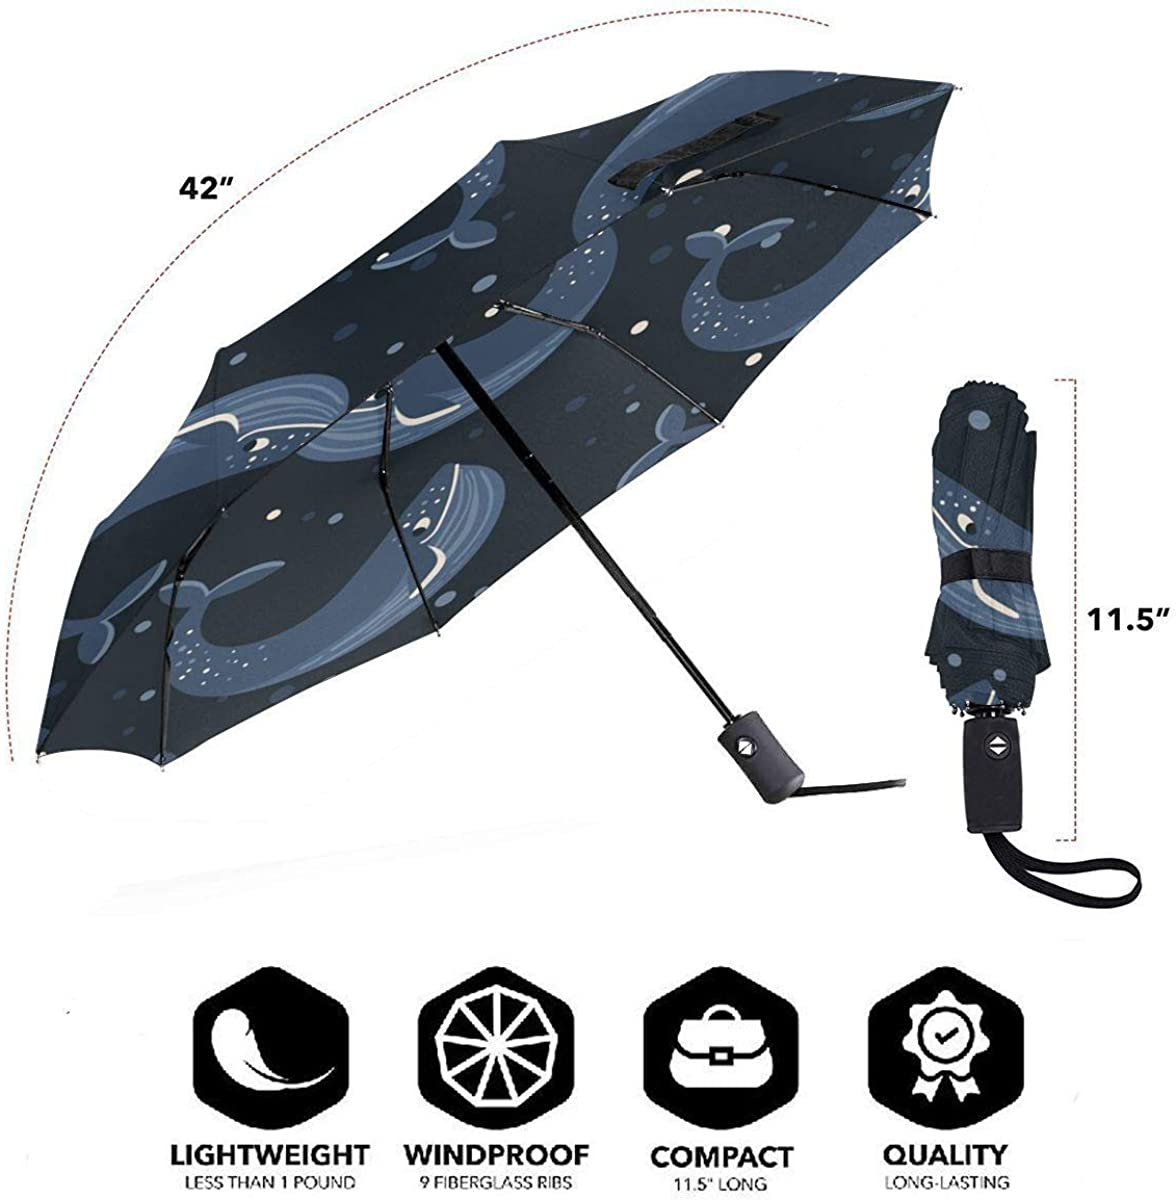 Dark Blue Whale Is Dancing Compact Travel Umbrella Windproof Reinforced Canopy 8 Ribs Umbrella Auto Open And Close Button Personalized